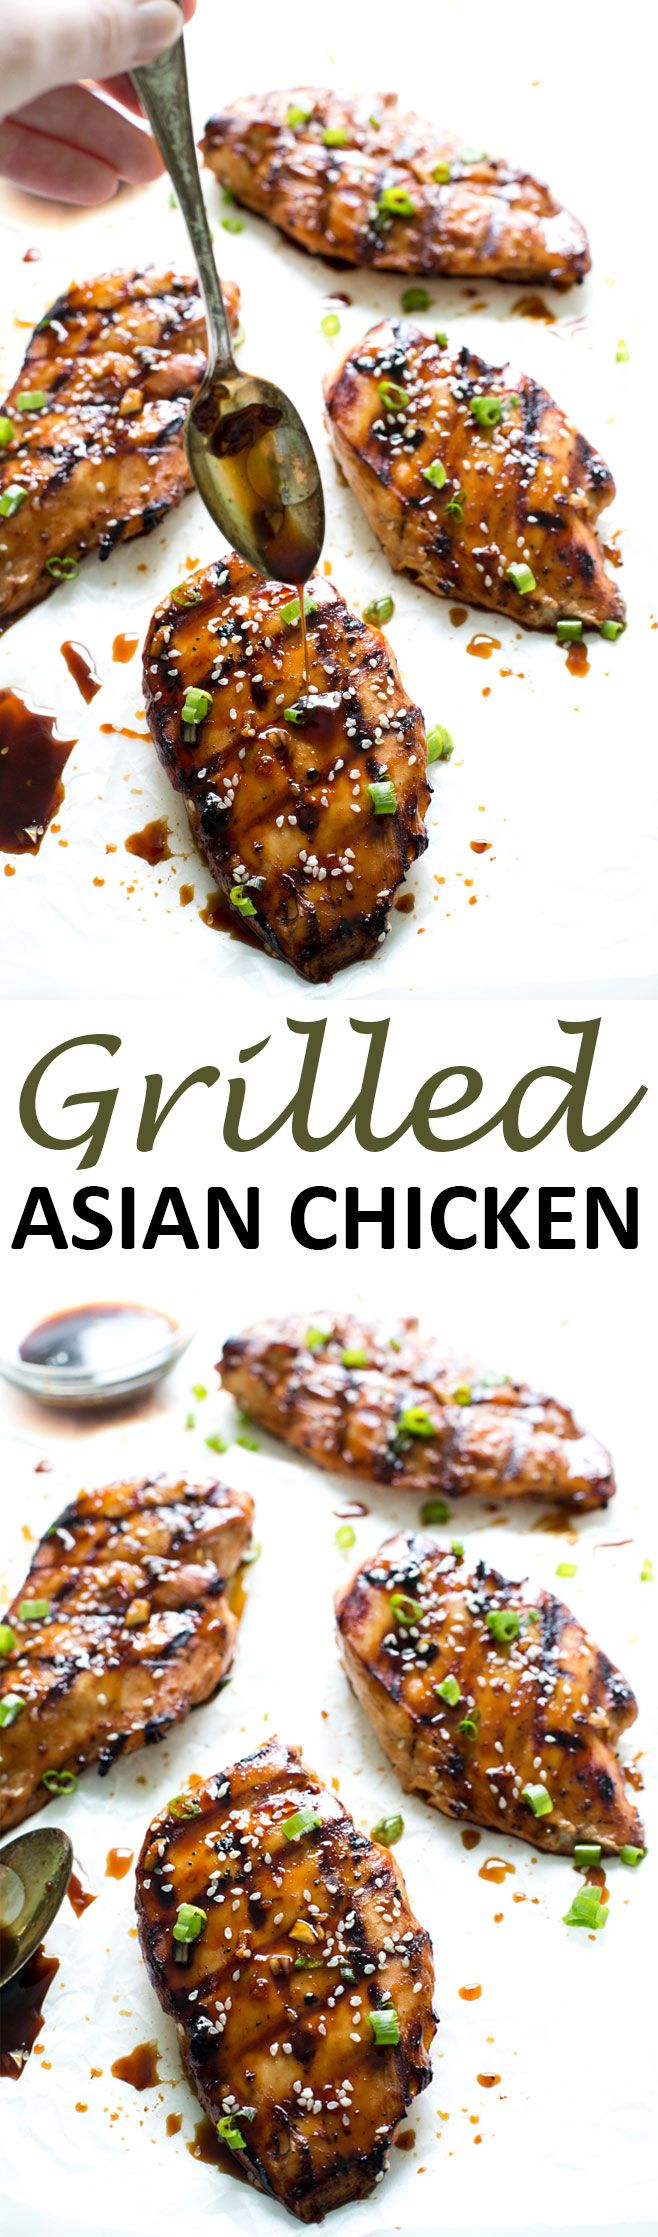 Juicy and tender Grilled Asian Chicken smothered in a sweet and spicy Asian sauce. Less than 10 minutes of prep time!